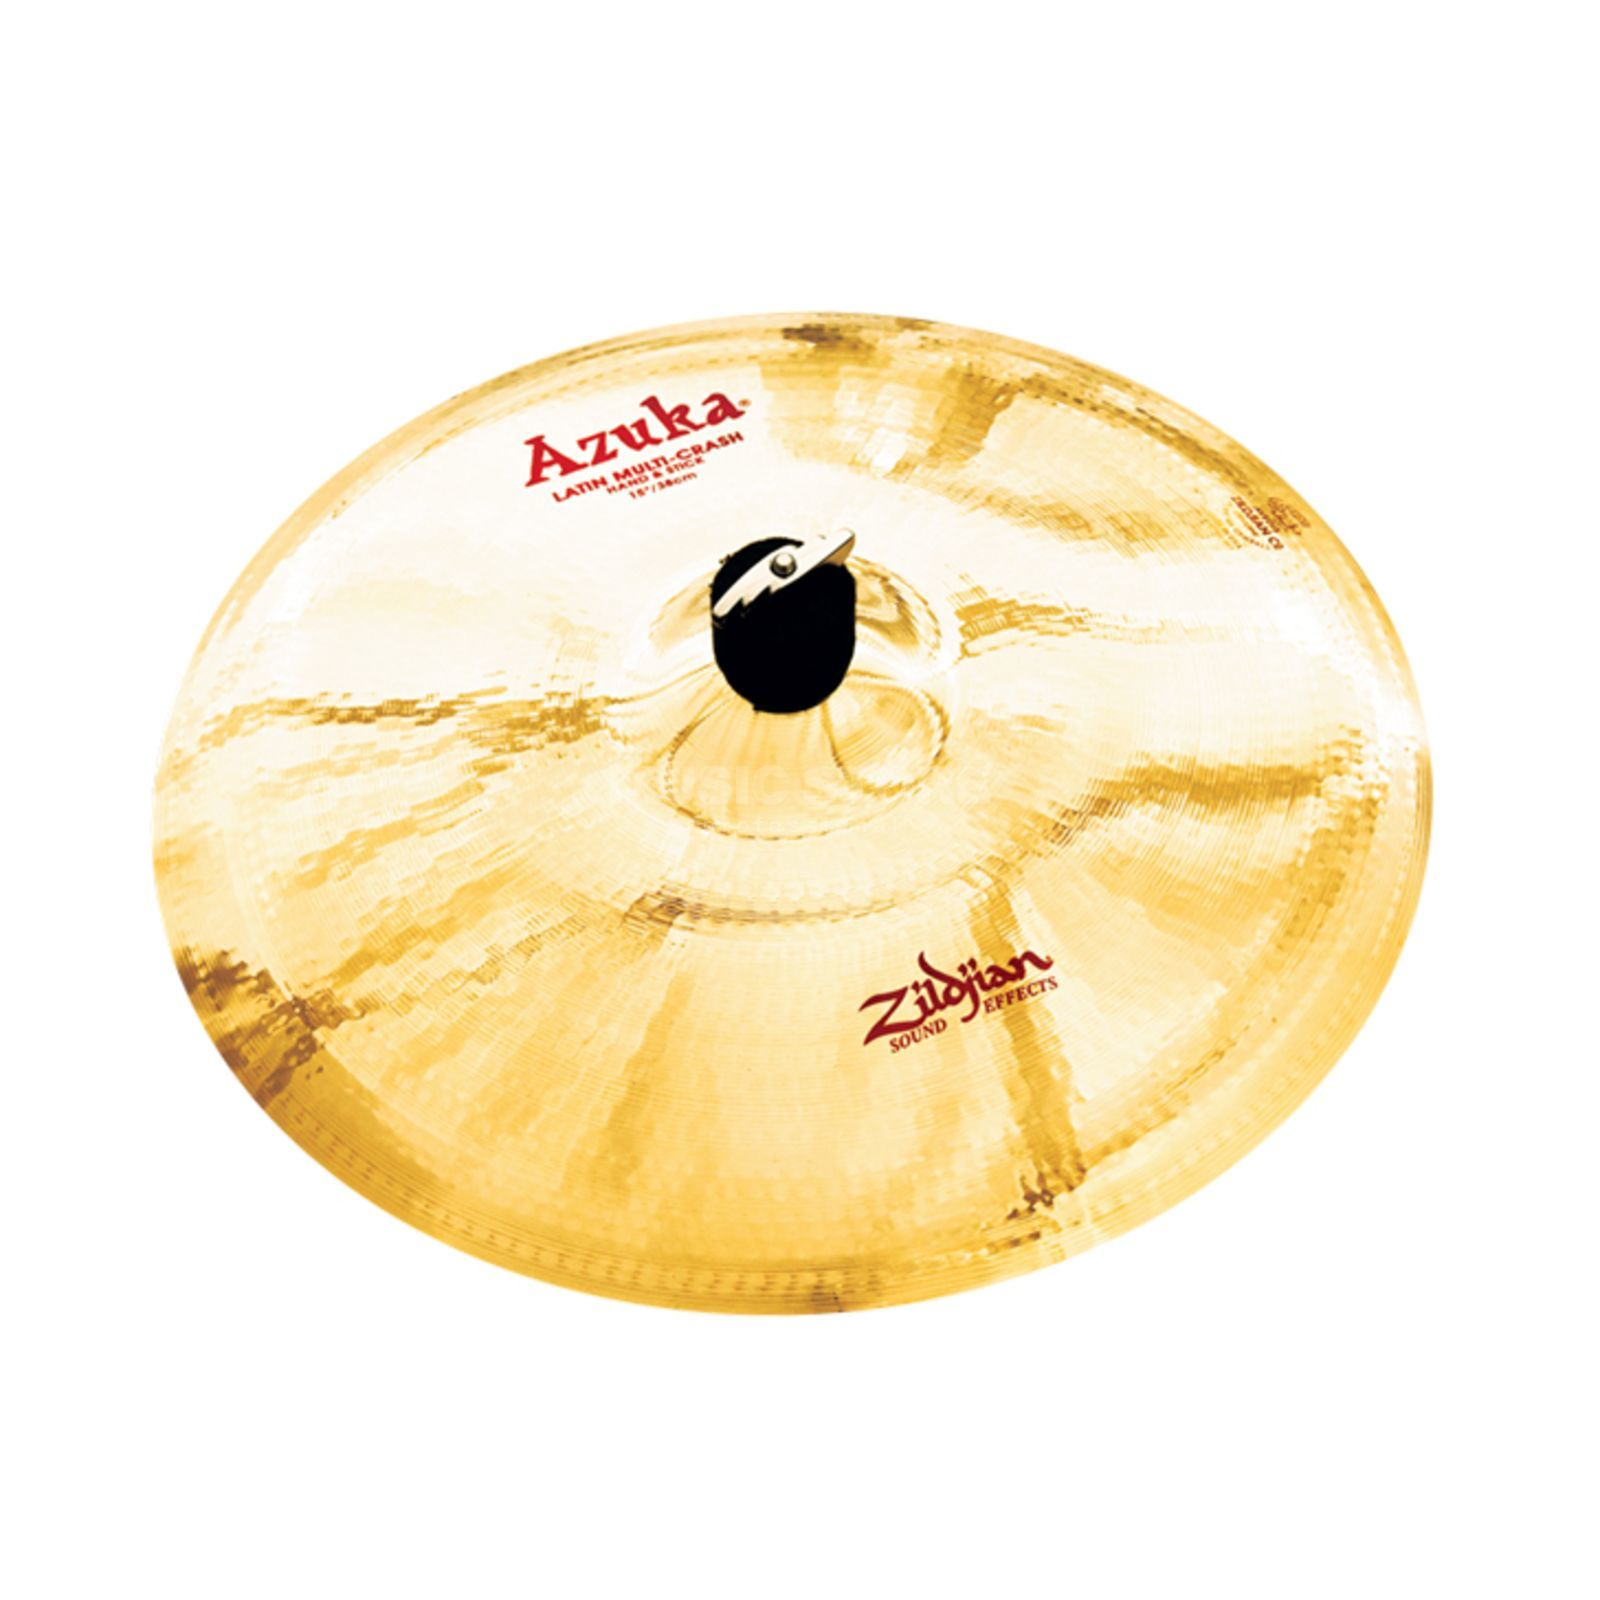 "Zildjian Azuka Latin Multi Crash 15"", finition brillante Image du produit"